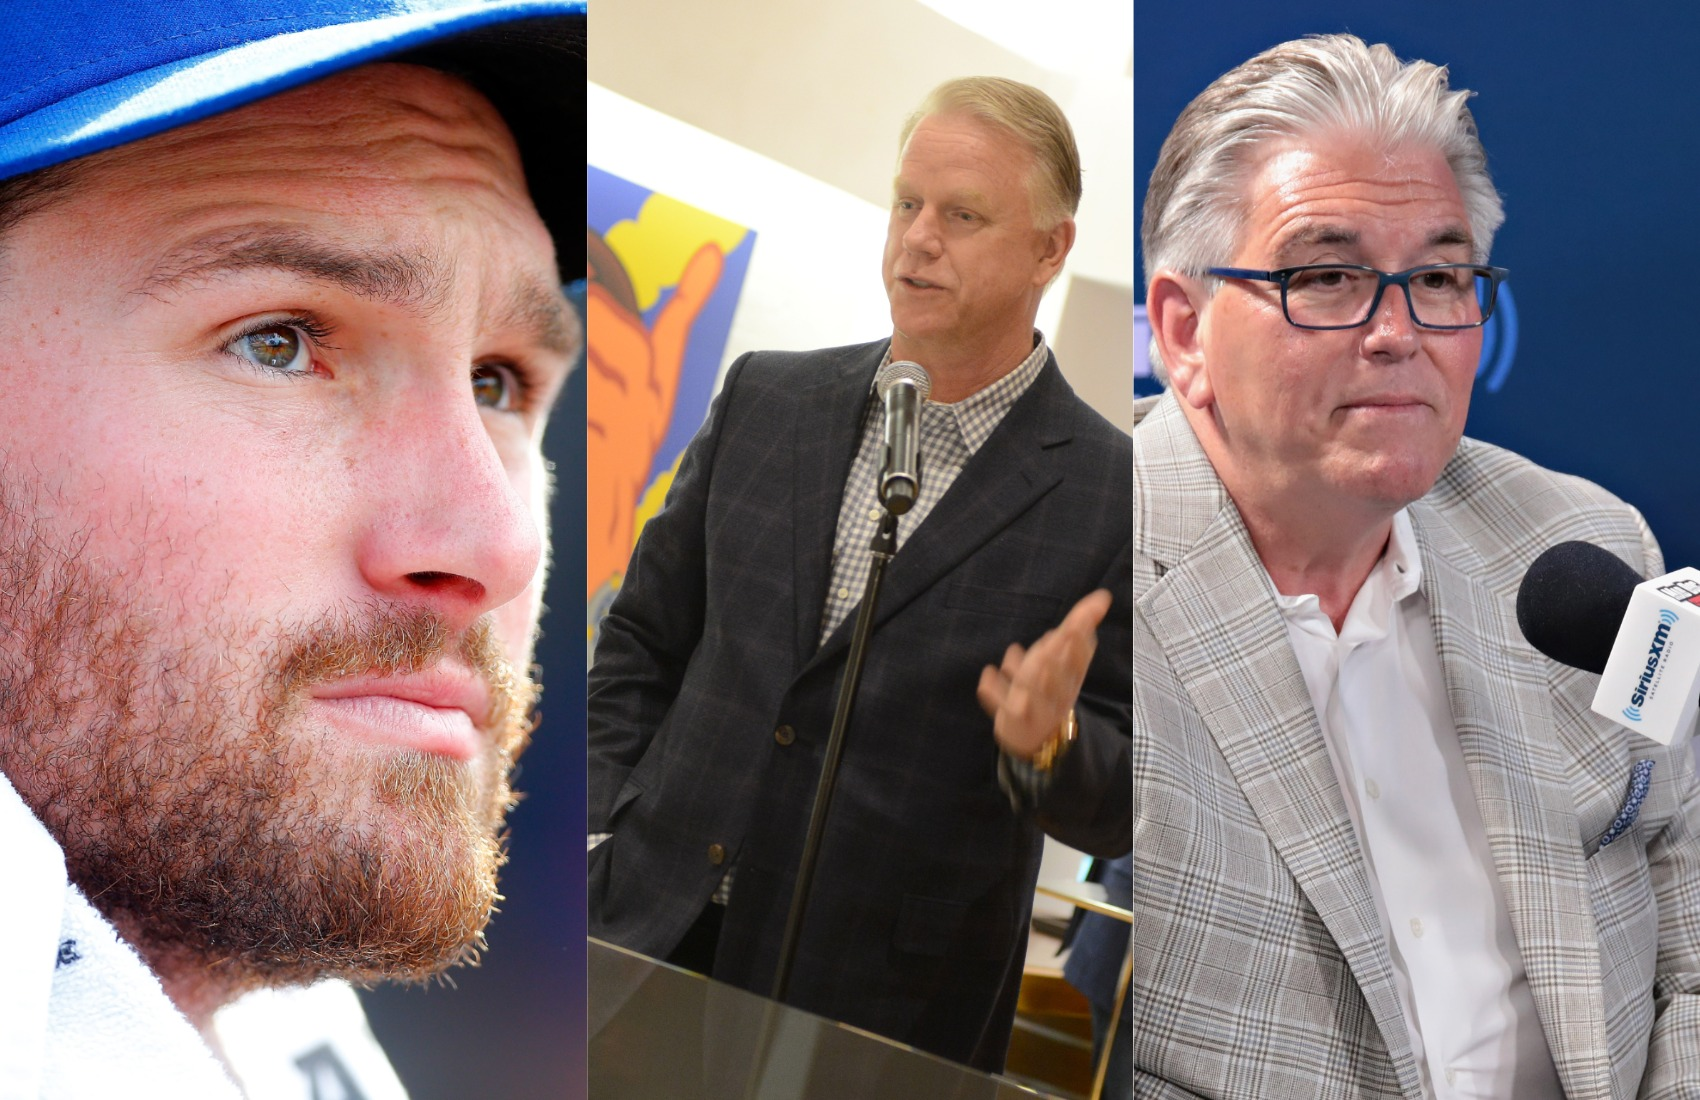 Former New York Mets second baseman Daniel Murphy (left) clashed with New York radio hosts Boomer Esiason (middle) and Mike Francesa when Murphy went on paternity leave.